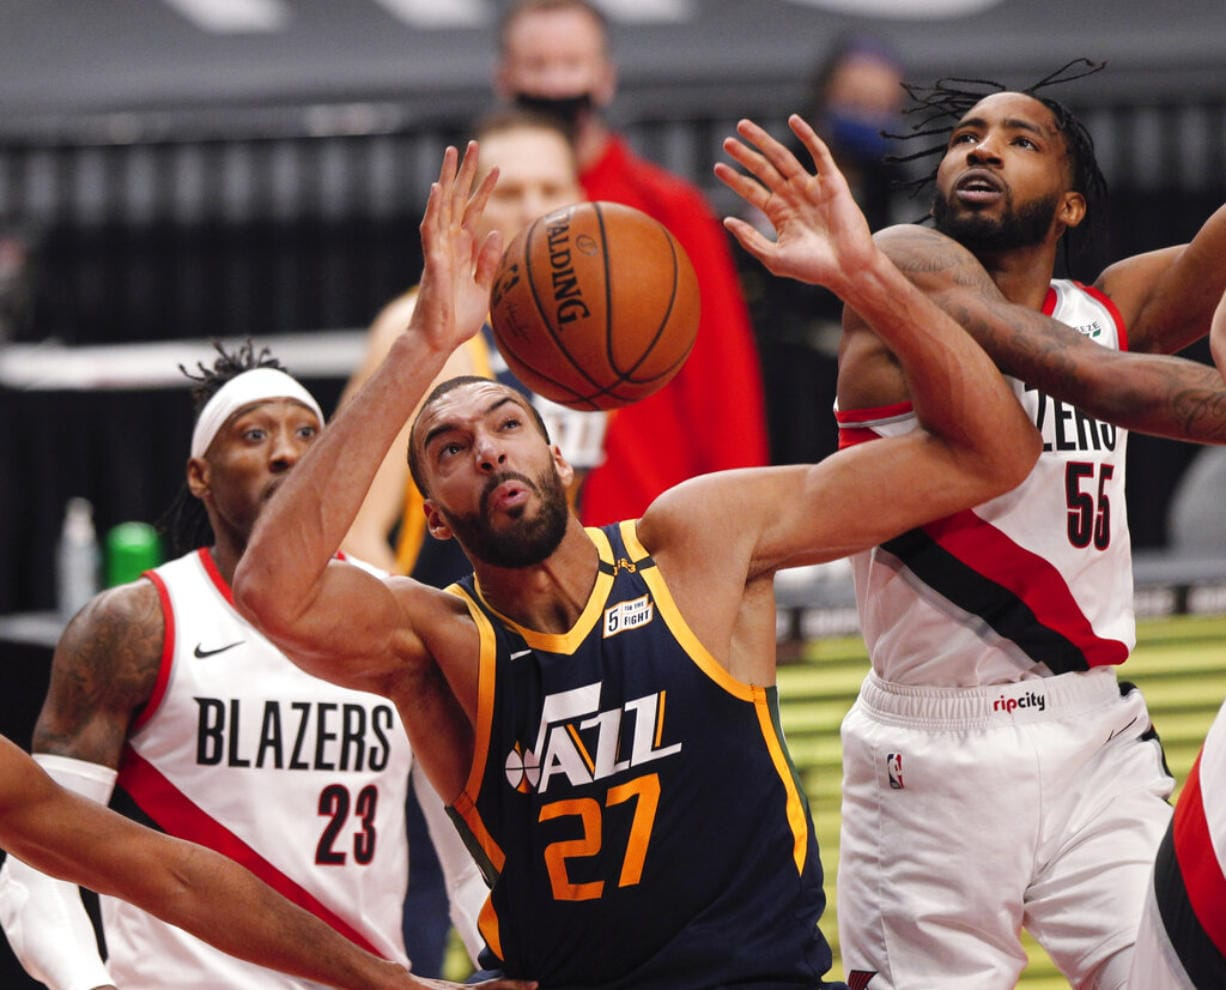 Portland Trail Blazers forward Derrick Jones Jr., right, and Utah Jazz center Rudy Gobert, middle, vie for a rebound as Trail Blazers forward Robert Covington, left, watches during the first half of an NBA basketball game in Portland, Ore., Wednesday, Dec. 23, 2020.